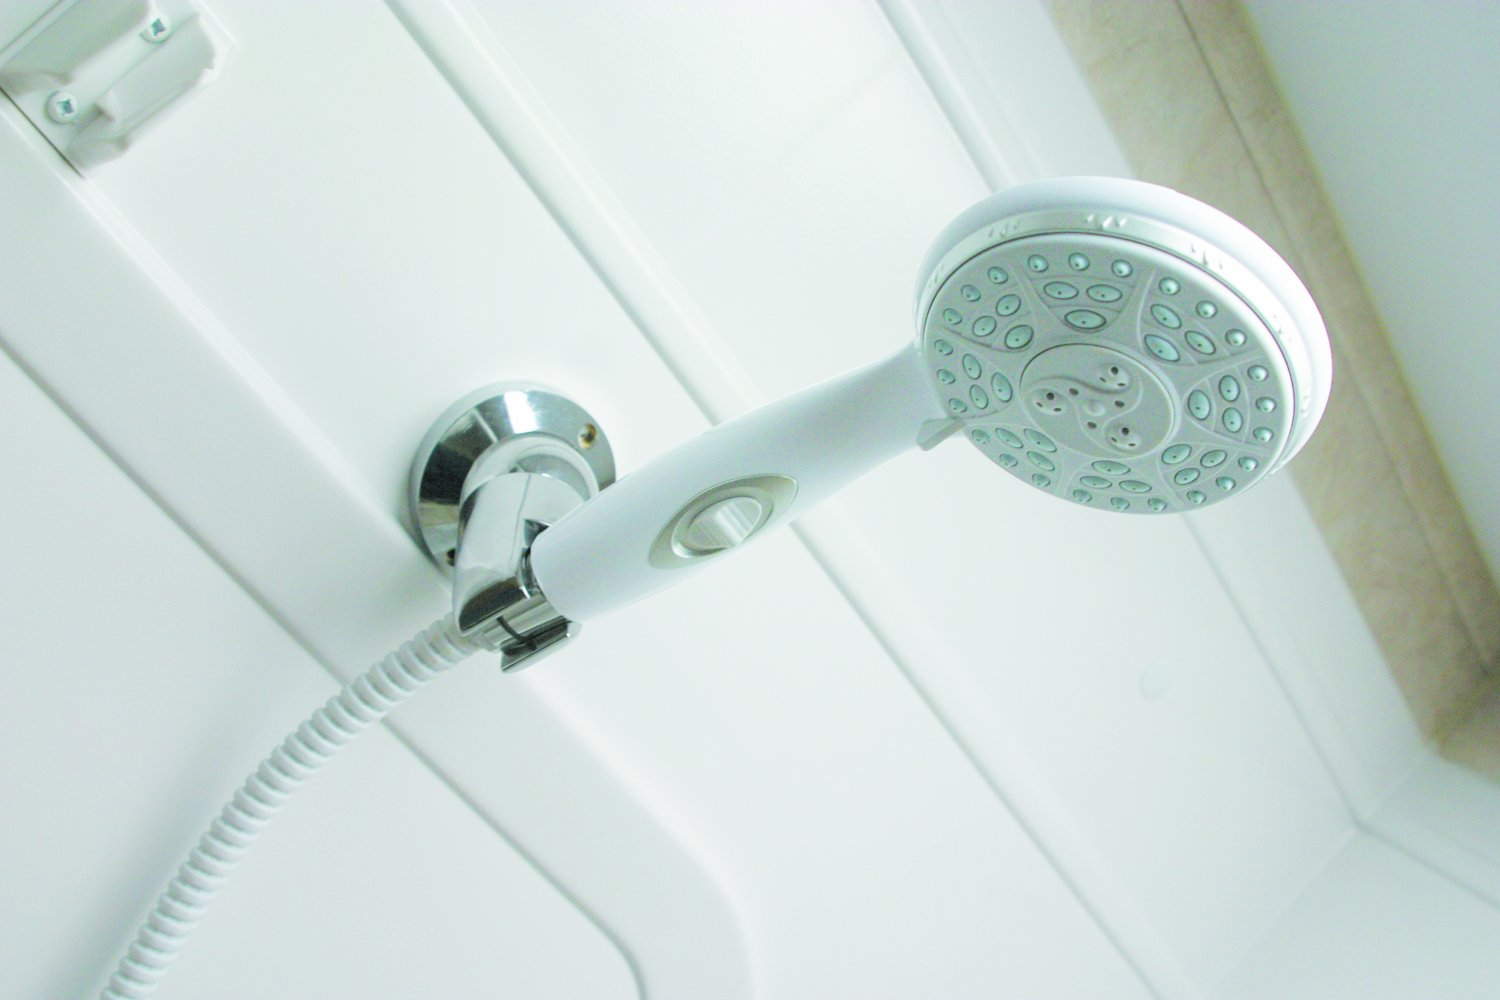 Amazon.com: Camco 43714 Shower Head Kit with On/Off Switch and 60 ...